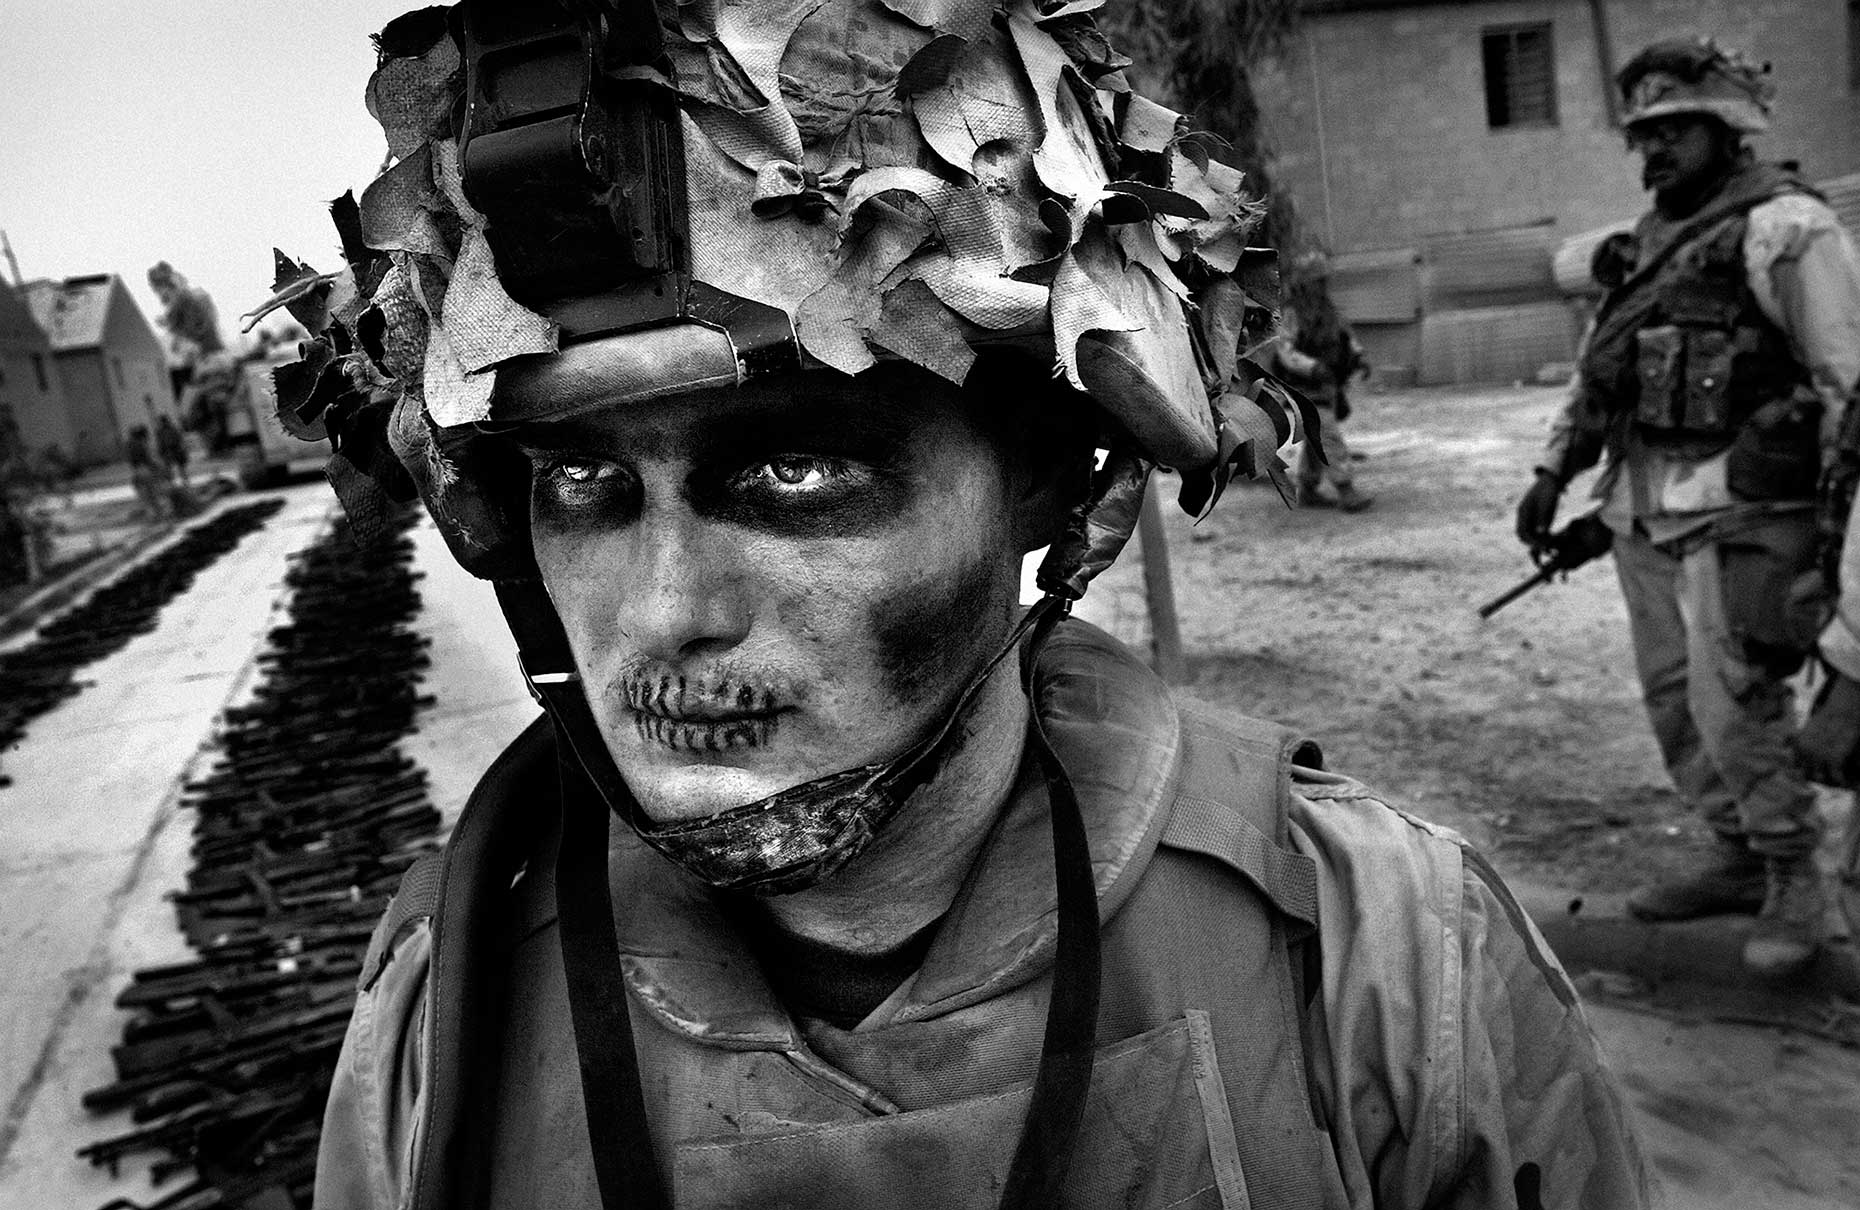 <b>Andrew Cutraro, April 8, 2003                                   </b>                                   I barely remember taking this photograph. I was totally unprepared for the physical and mental rigors of covering the Marines. I was exhausted and disoriented to a breaking point, so when I saw this scene, I thought I was hallucinating. The killing had picked up and become personal as the invasion force moved from the open desert into the urban areas. This photo was taken just outside Baghdad before it fell. The Marines were told to expect a bloody street-to-street fight for the capital and the men of Lima Co., 3/7 were steeling themselves for it.